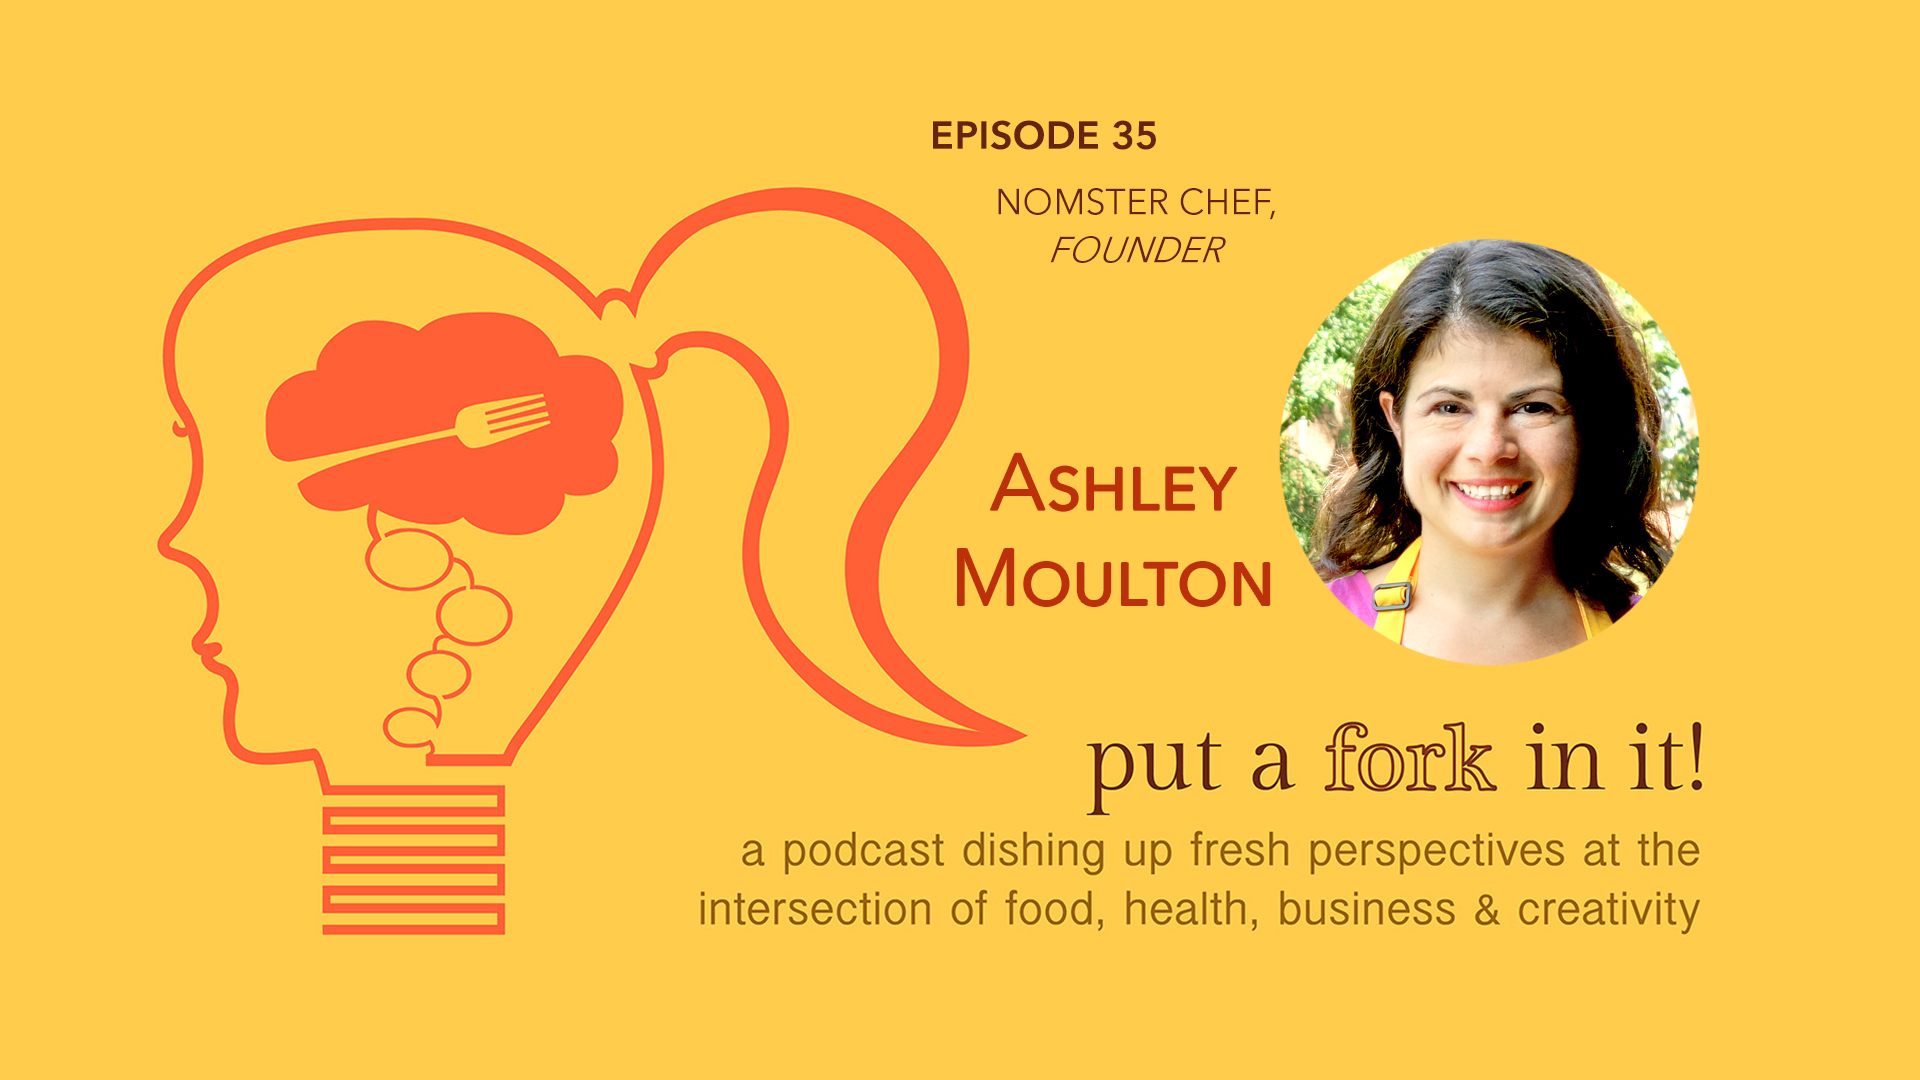 35: Ashley Moulton, Founder, Nomster Chef